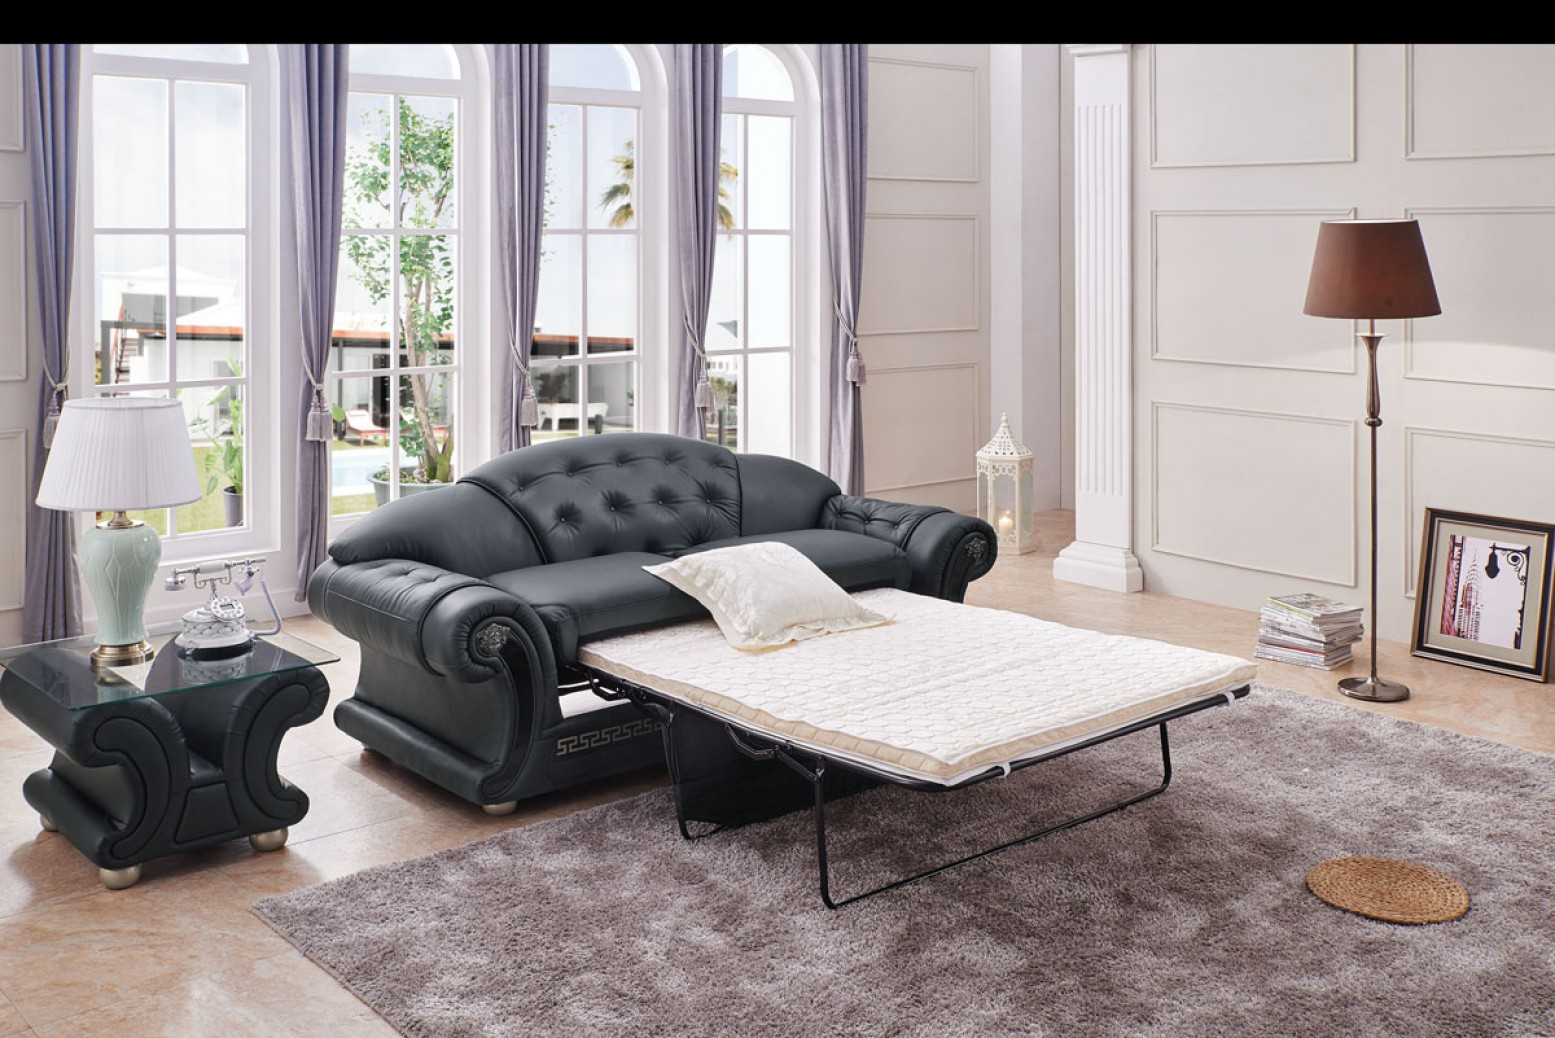 Apolo Living Room Set Wsofa Bed Black Buy Online At Best Price in Living Room Set On Sale